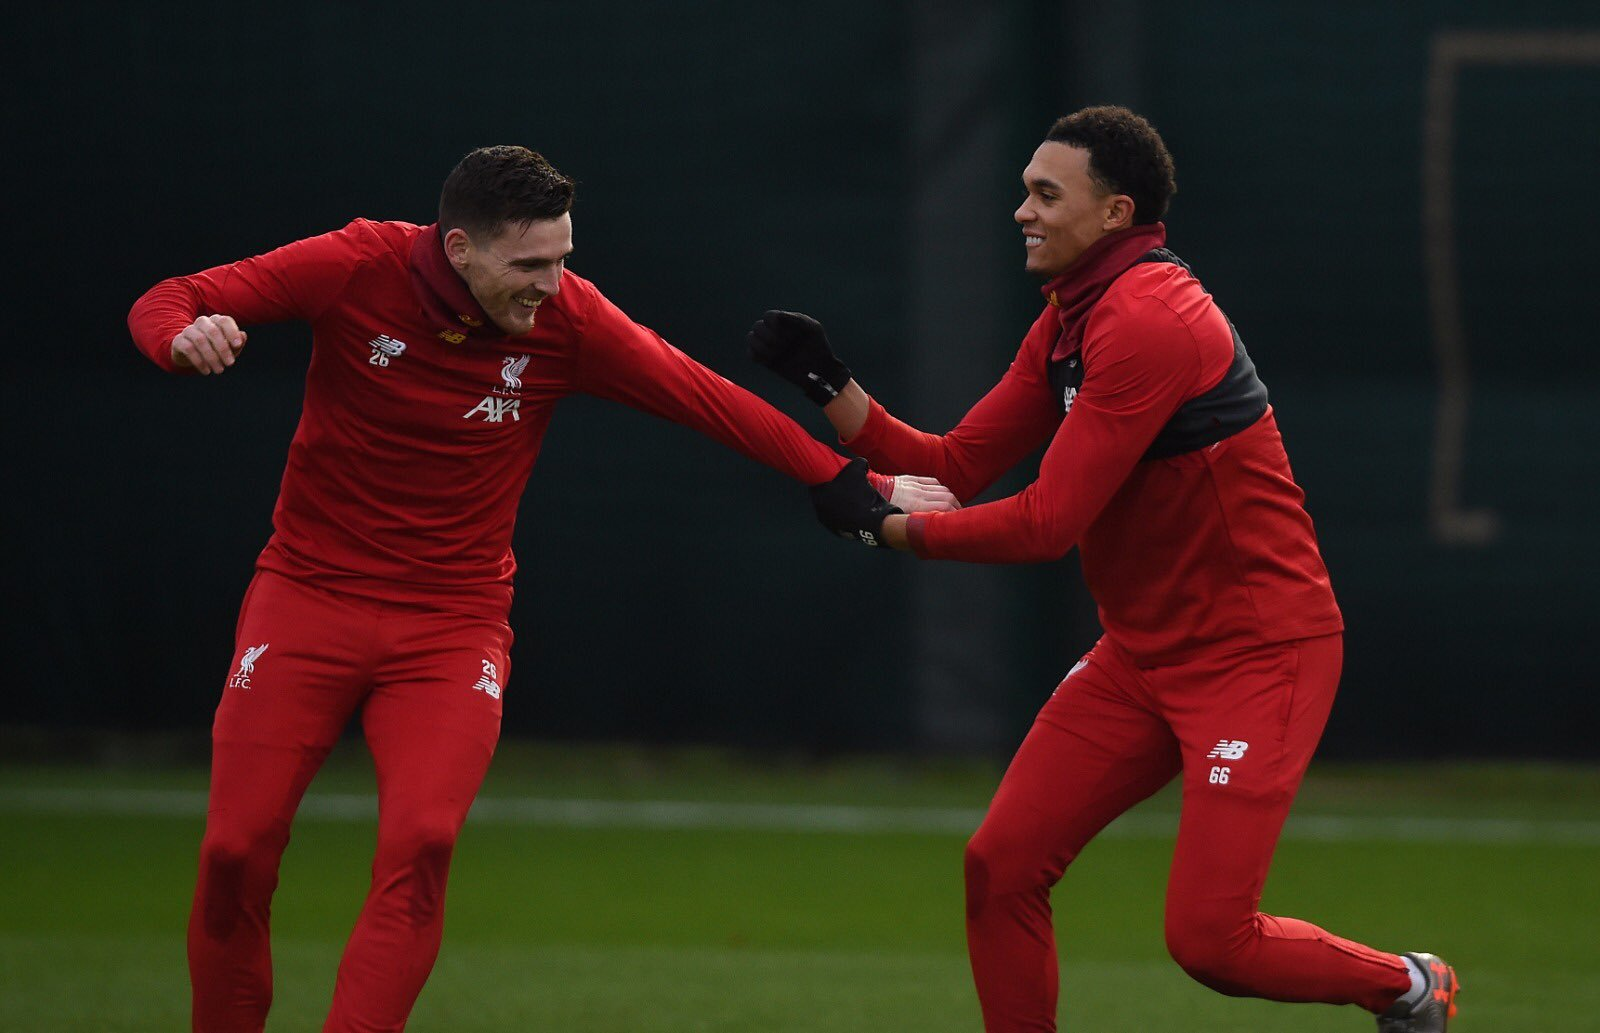 Liverpool: Fans loved the banter between Trent Alexander-Arnold and Andy Robertson